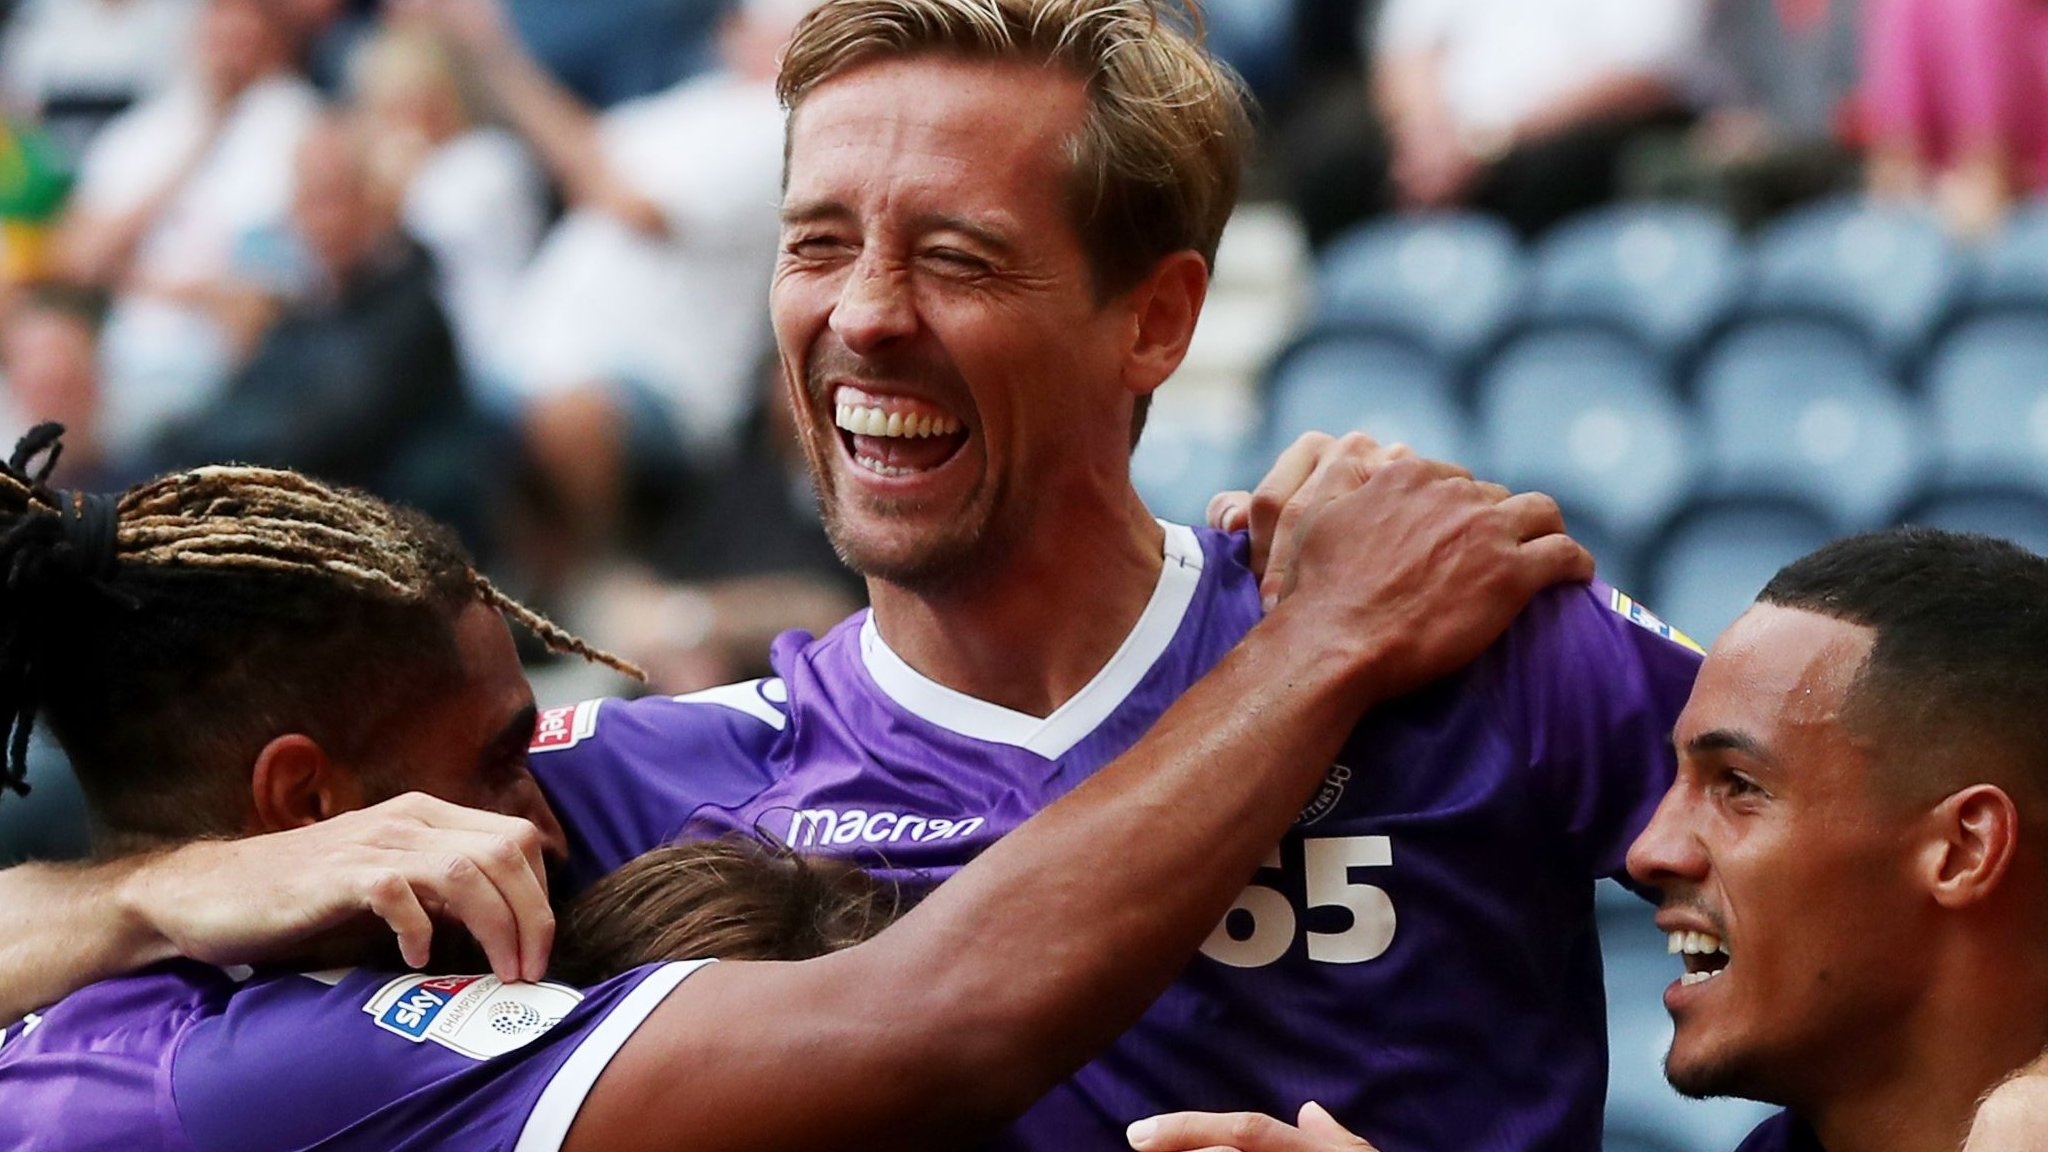 Preston North End 2-2 Stoke City: Peter Crouch salvages draw for Potters